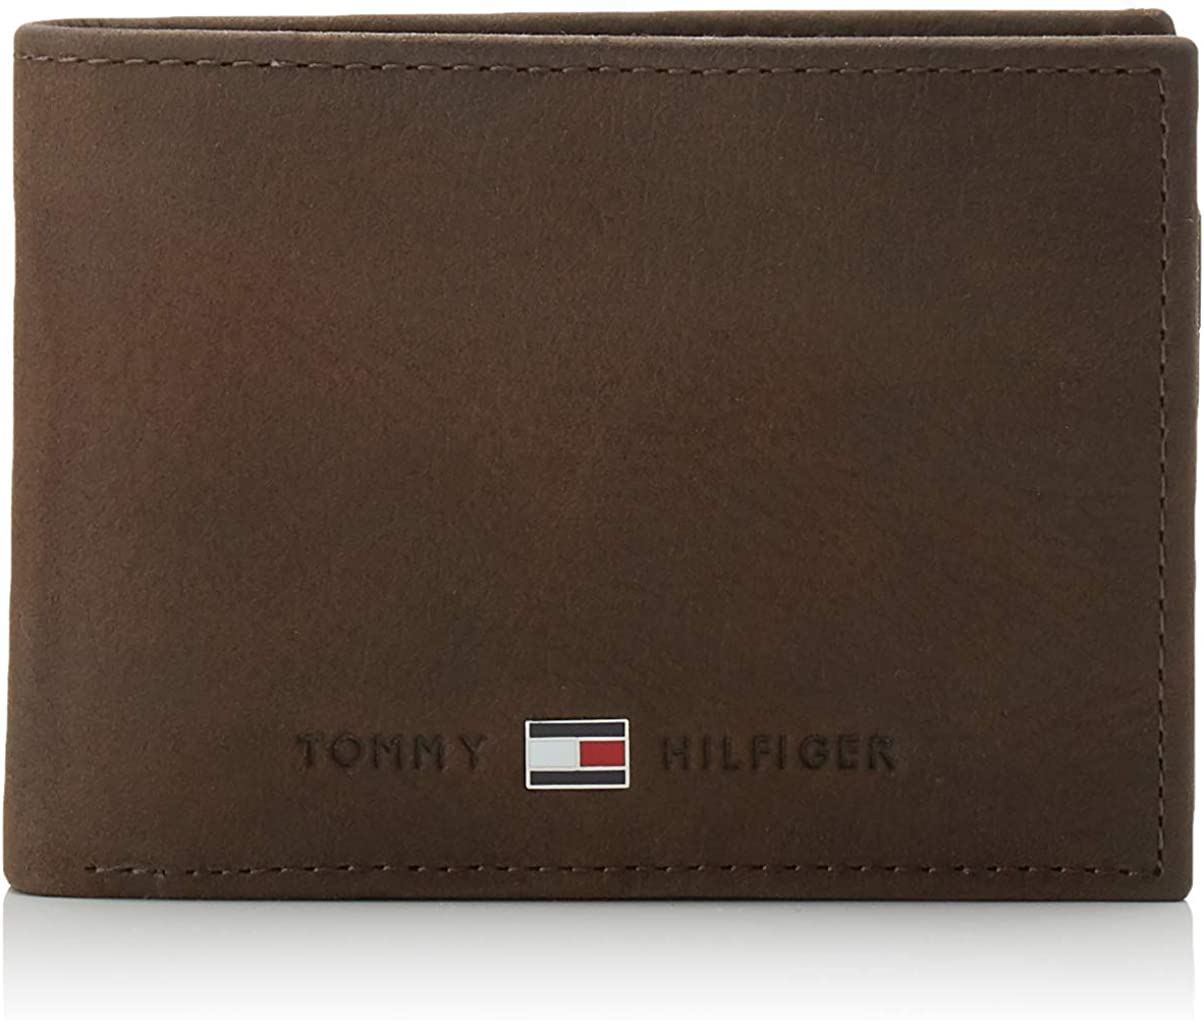 Details about TOMMY HILFIGER Johnson CC Flap And Coin Pocket Cash Wallet Black